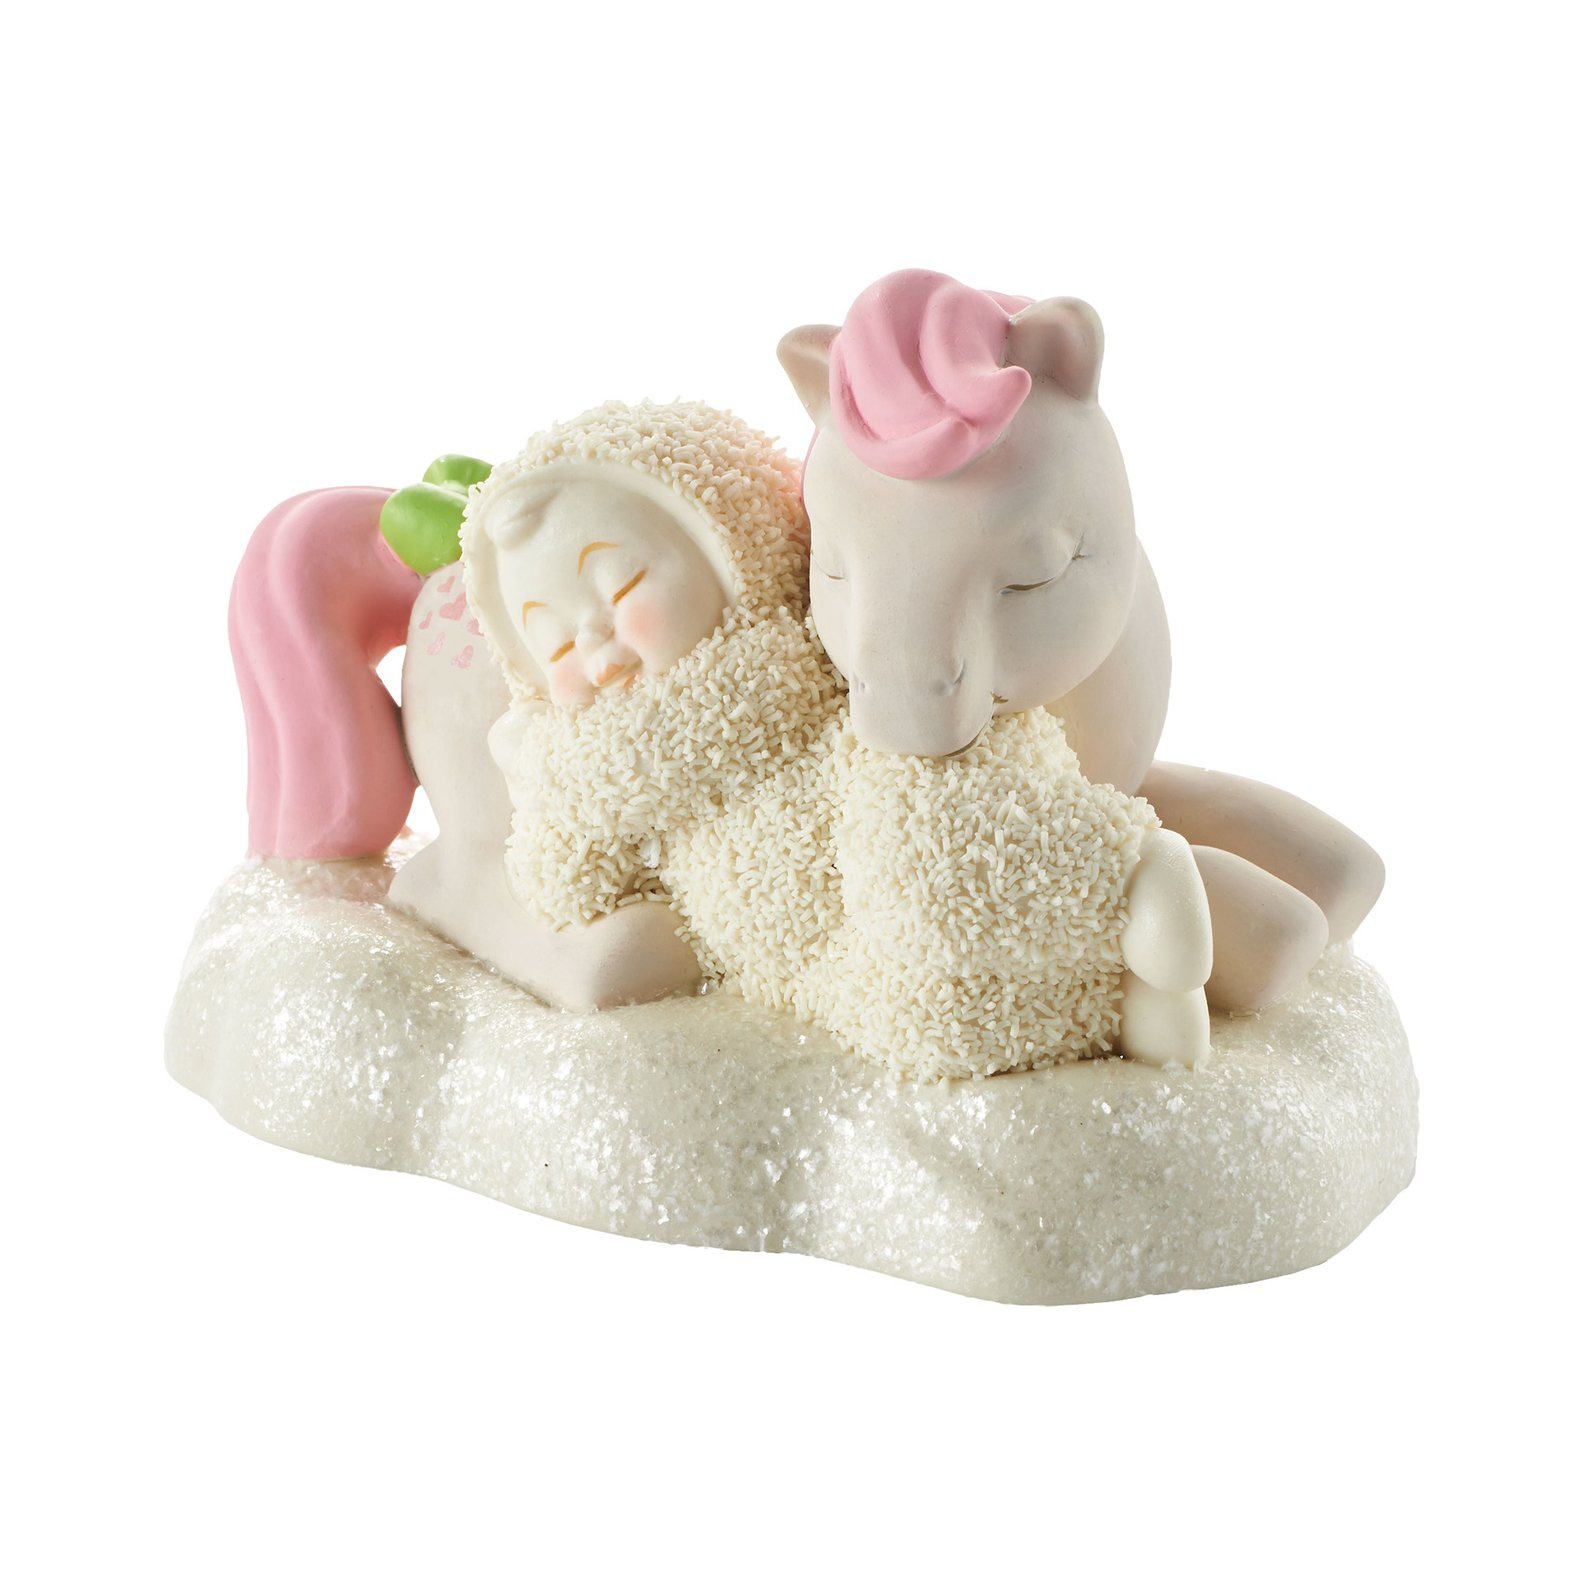 Department 56 Snowbabies Guest Collection Good Night, Snuzzle Figurine, 3.27''